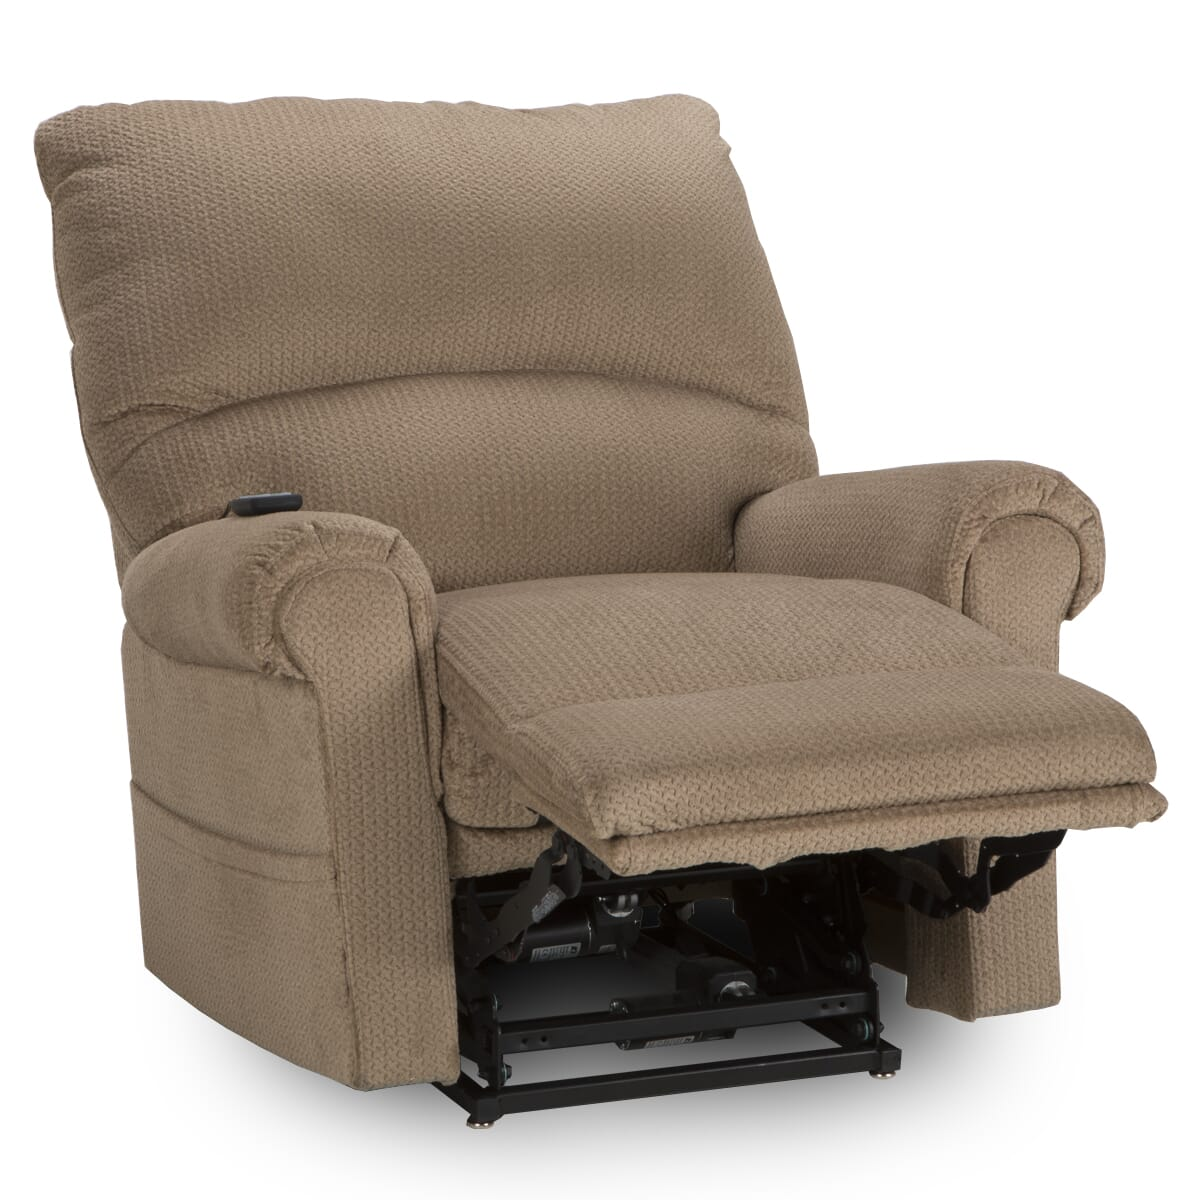 Alcitor Ii Power Bed Lift Chair Lift Chairs Wg Amp R Furniture